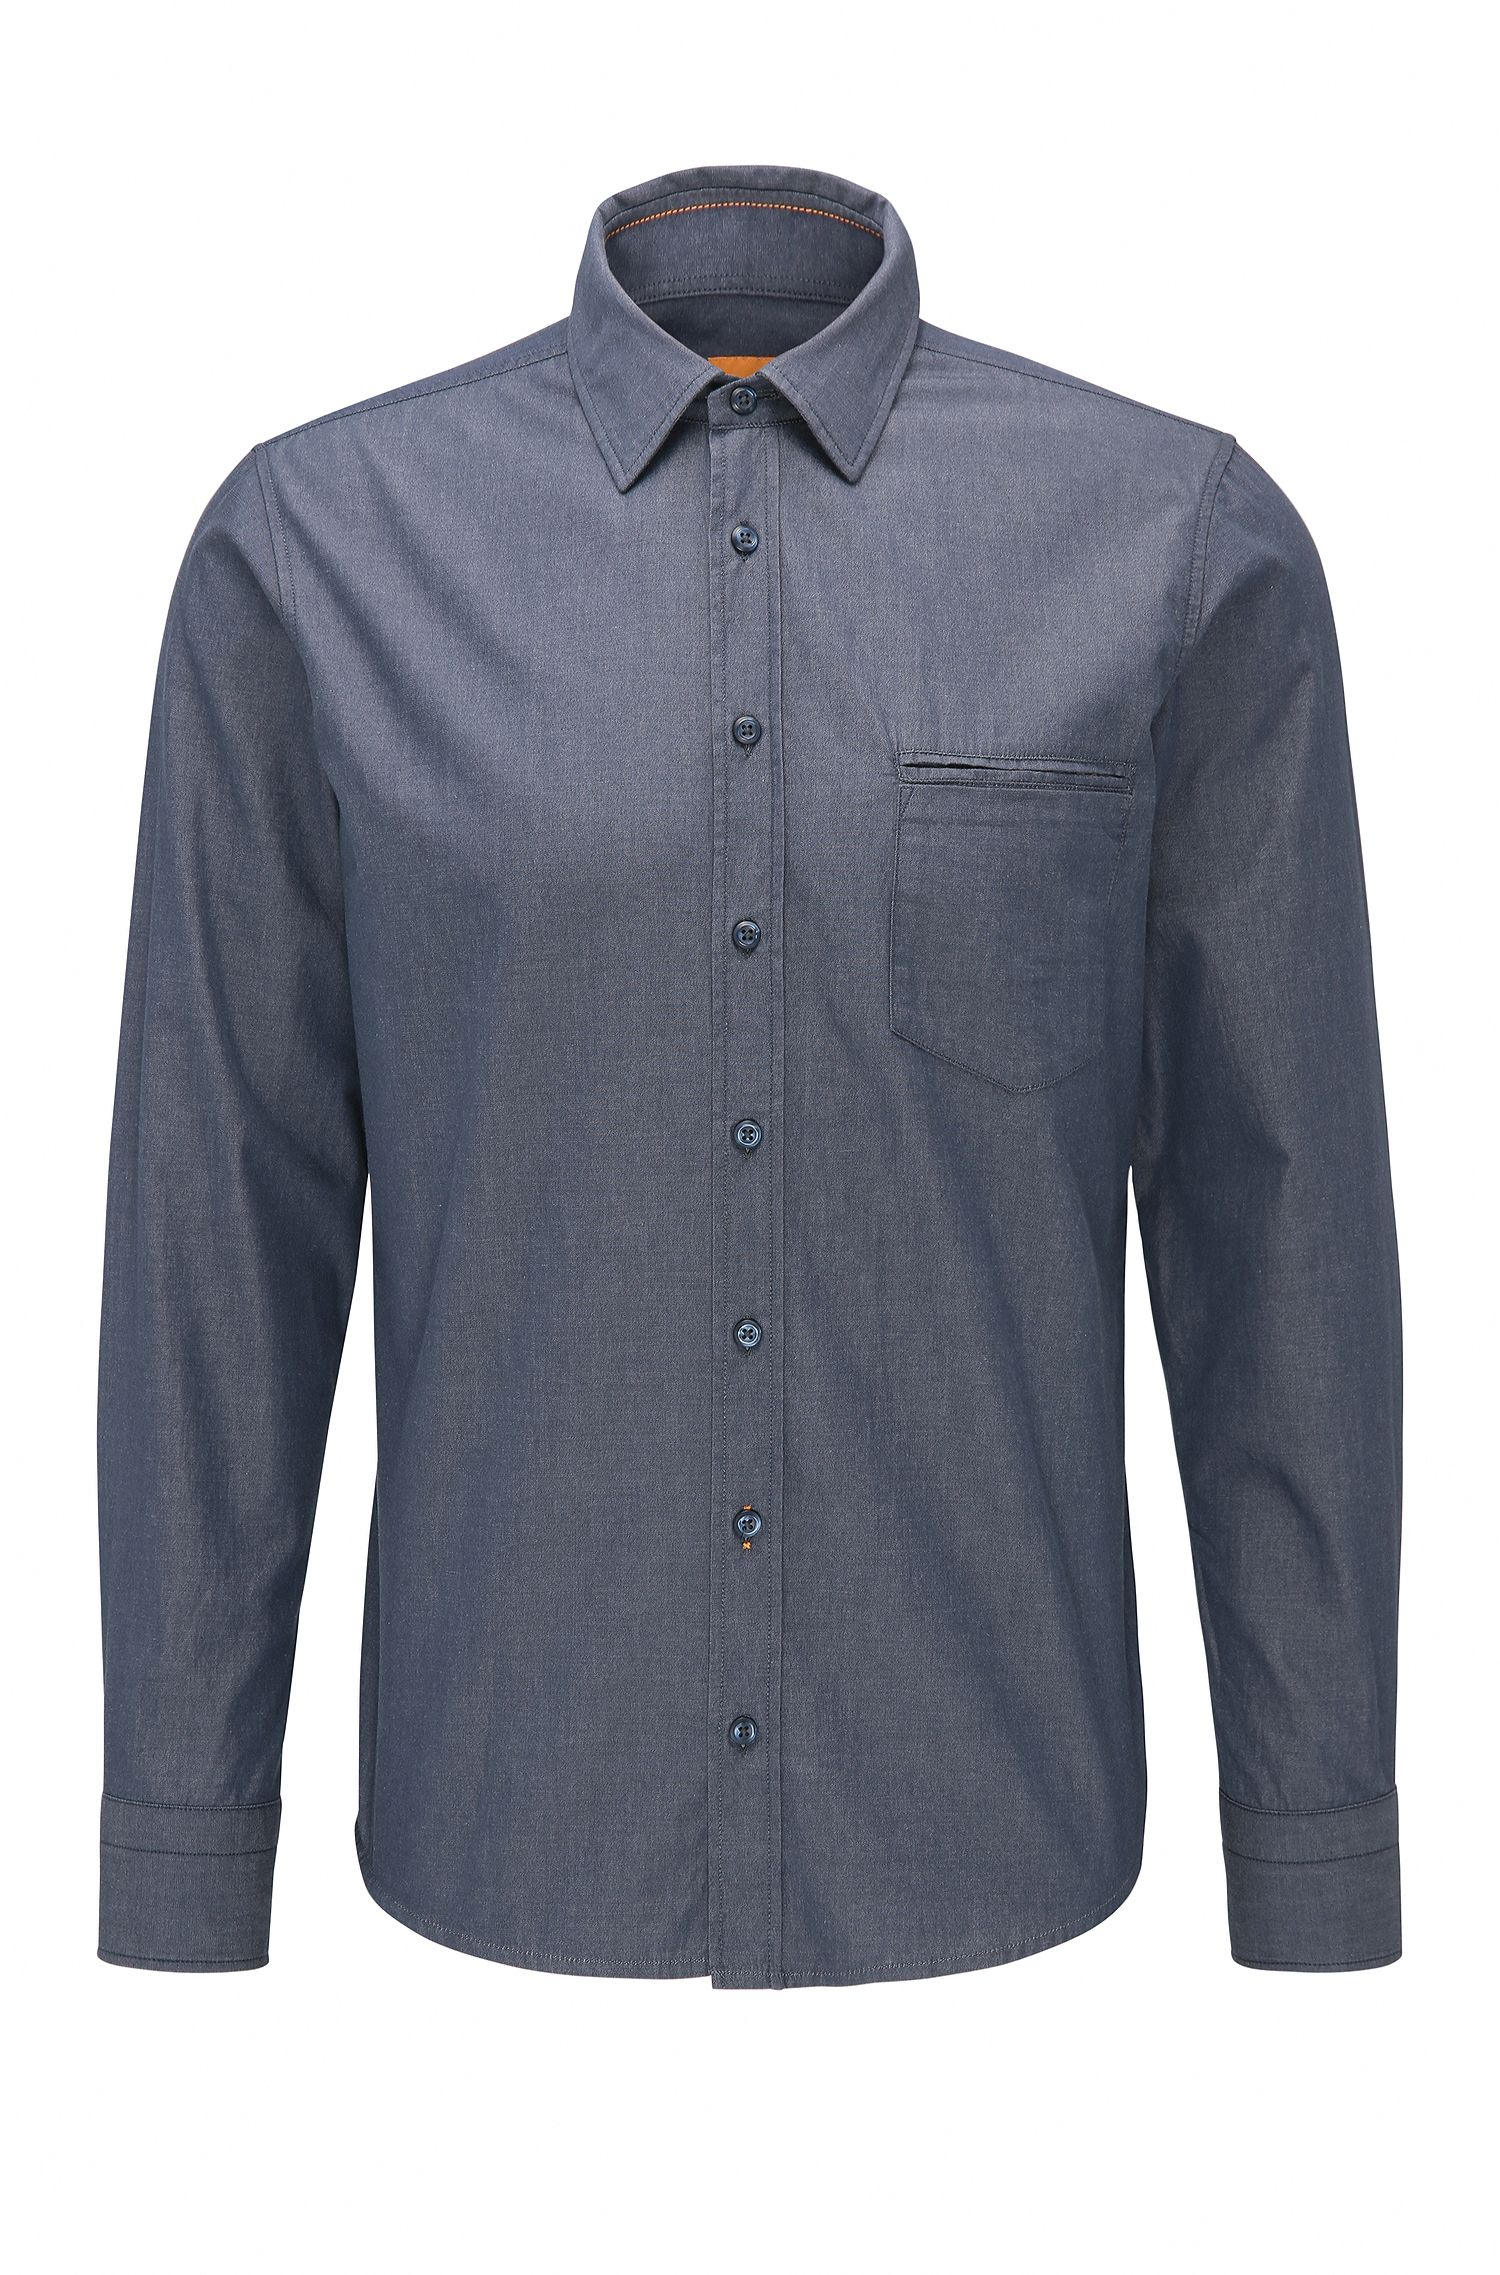 Regular-fit shirt in yarn-dyed cotton